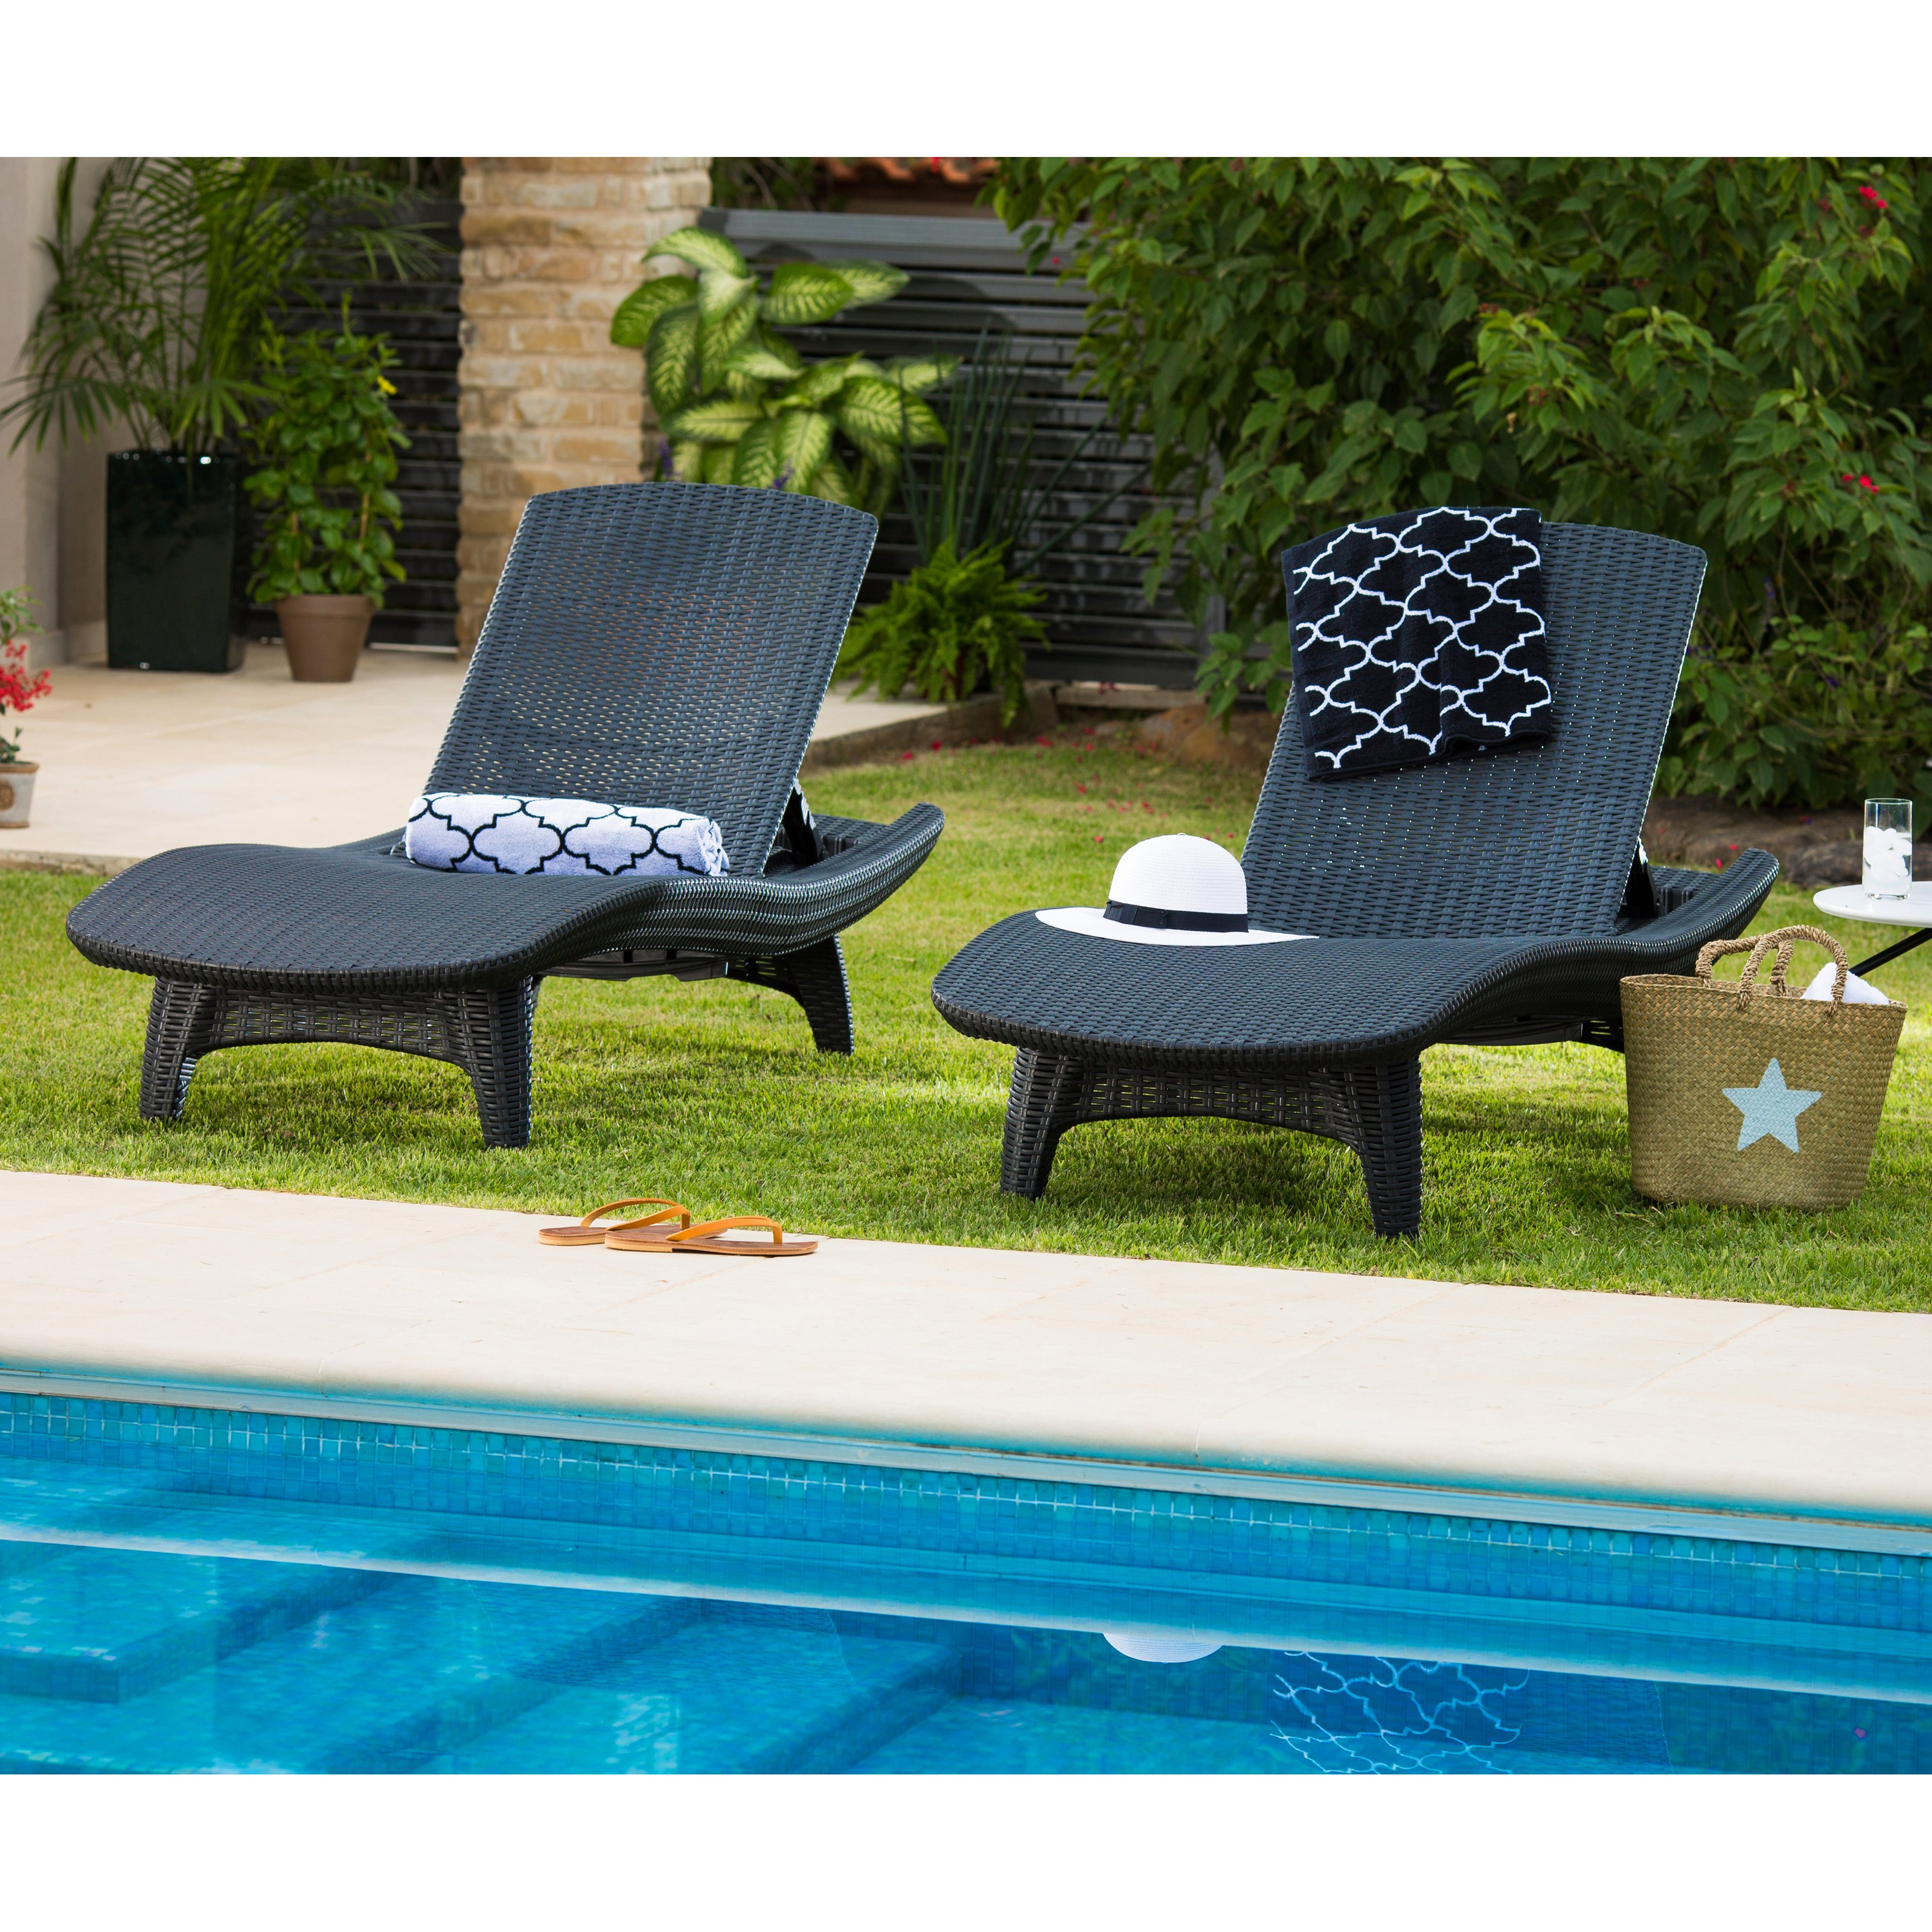 Superb Keter Outdoor Chaise Lounge   Set Of 2